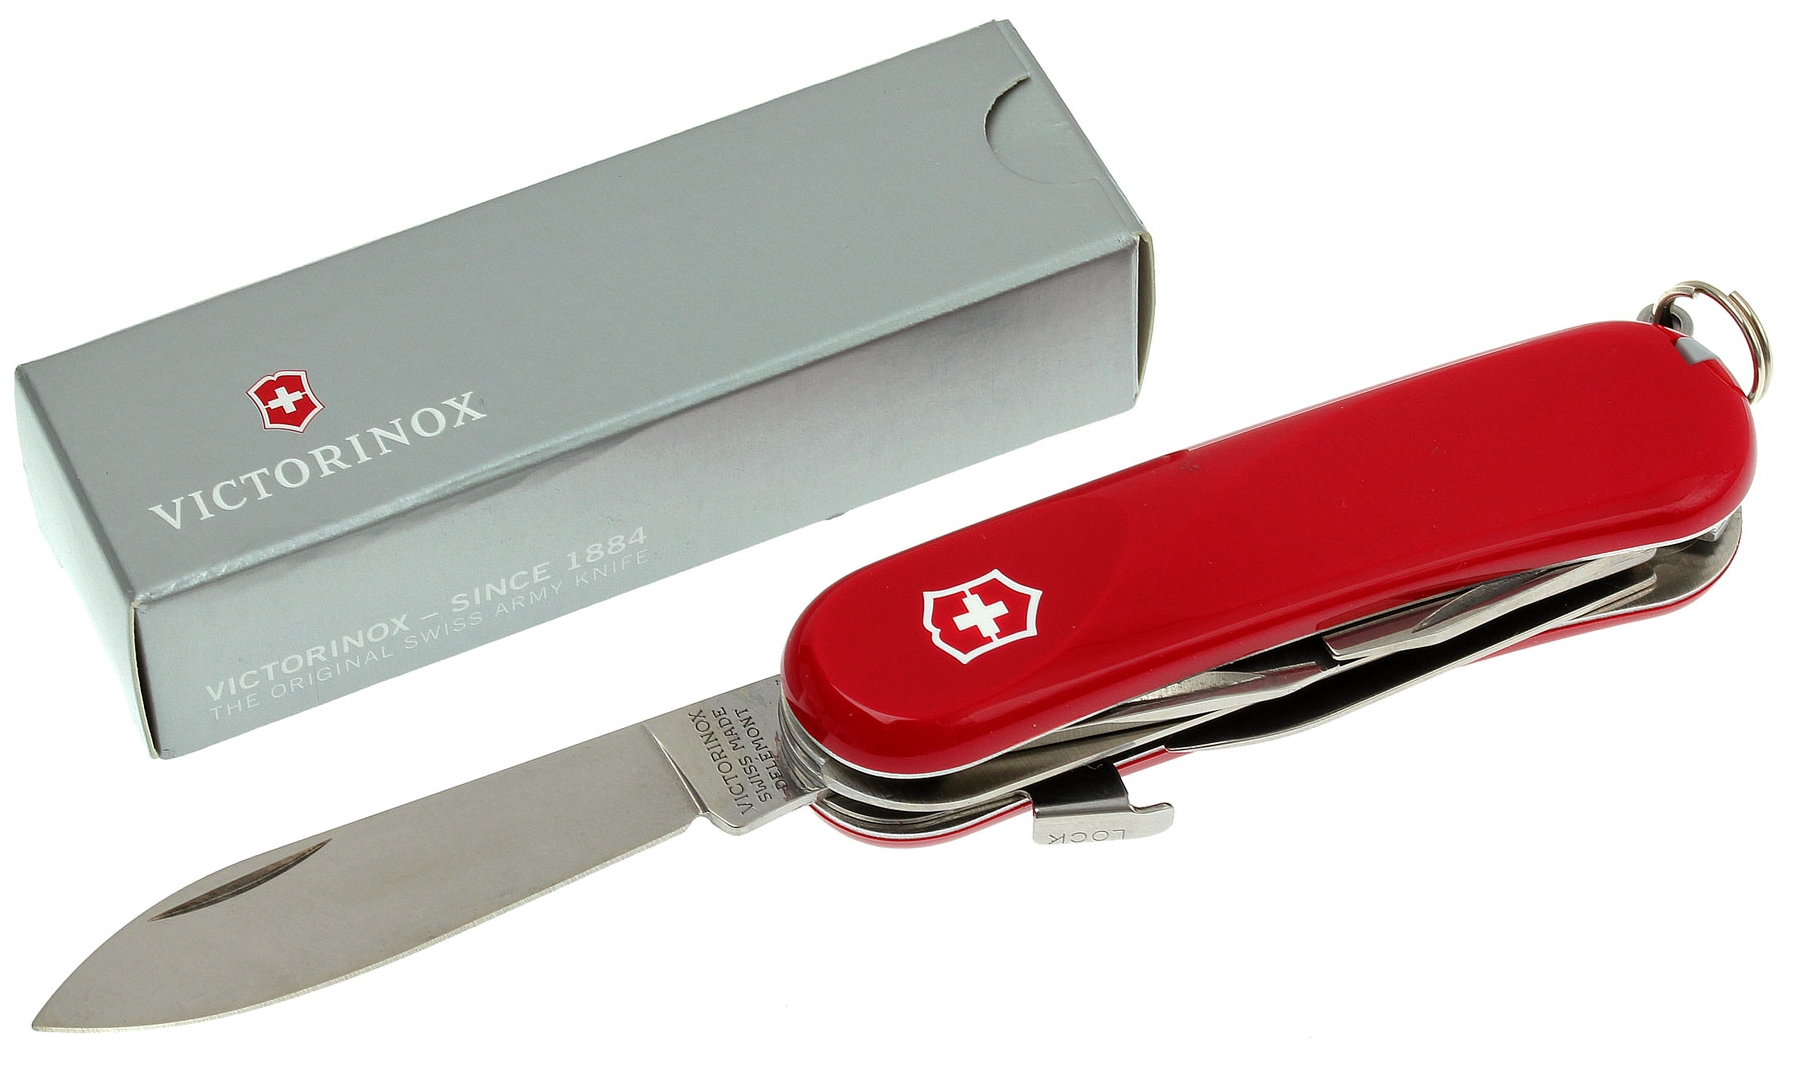 Victorinox Del 233 Mont Collection Evolution S52 Del 233 Mont